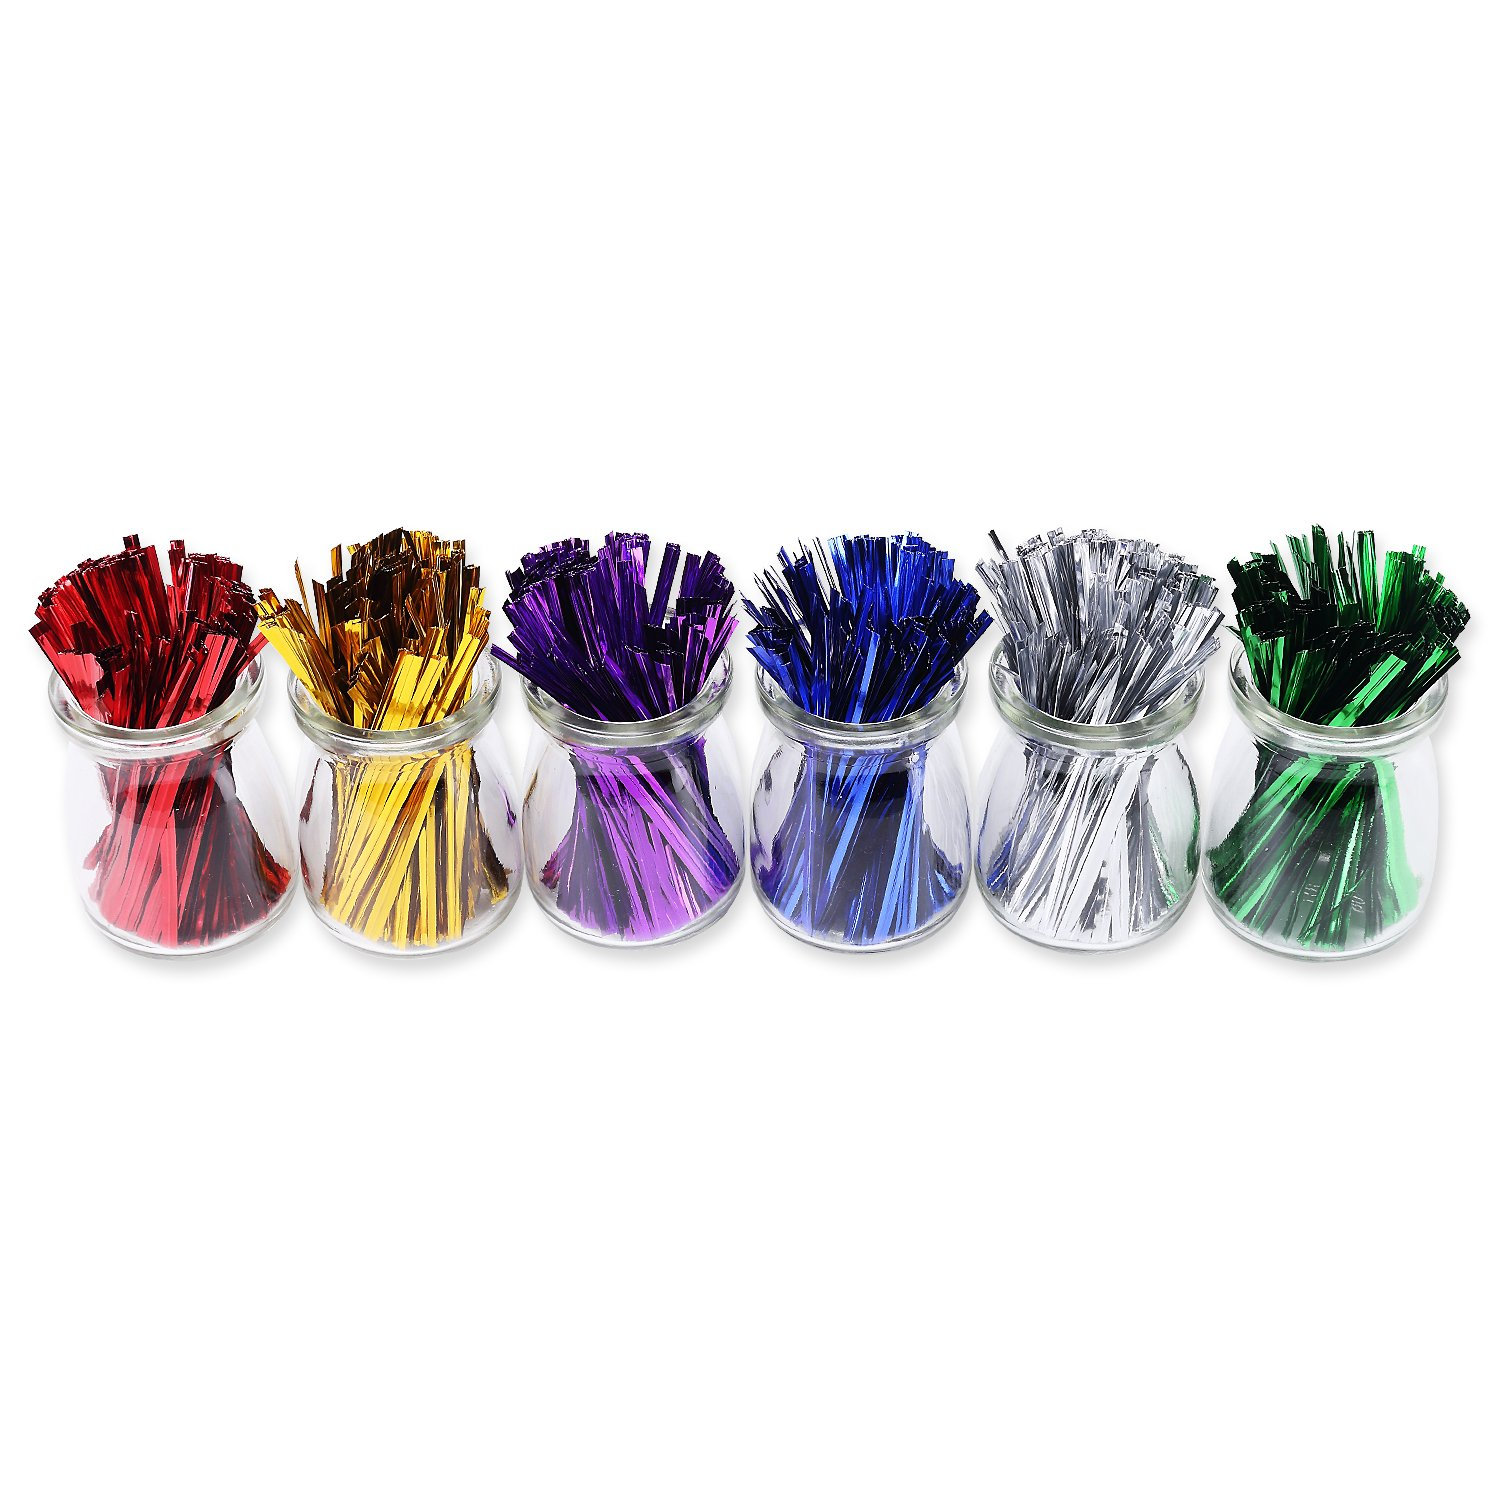 Sago Brothers 1200pcs 4'' Metallic Twist Ties - 6 Colors